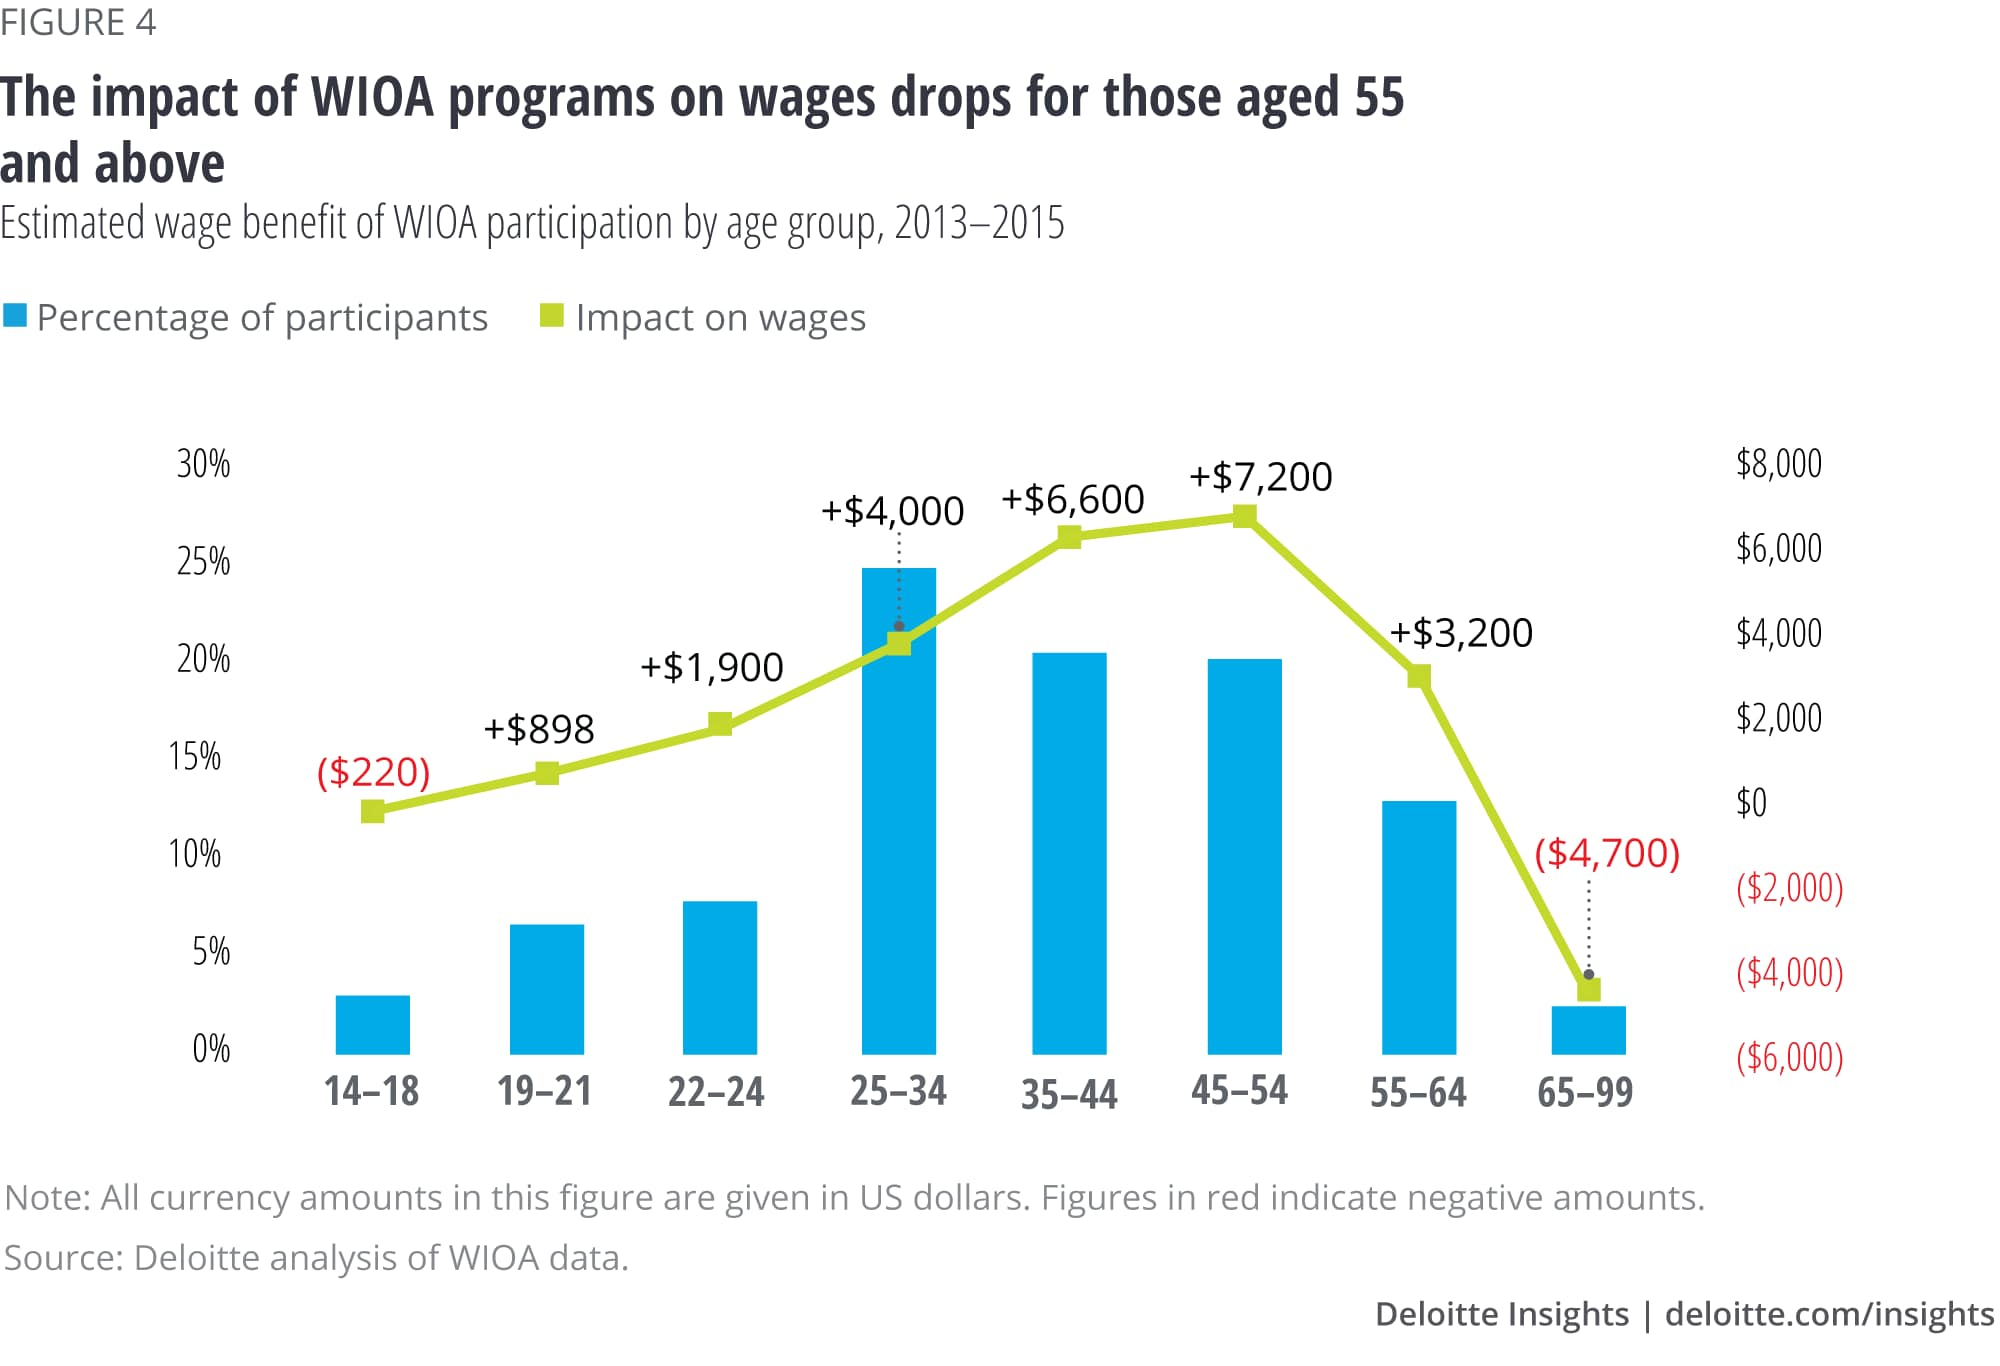 The impact of WIOA programs on wages drops for those aged 55 and above